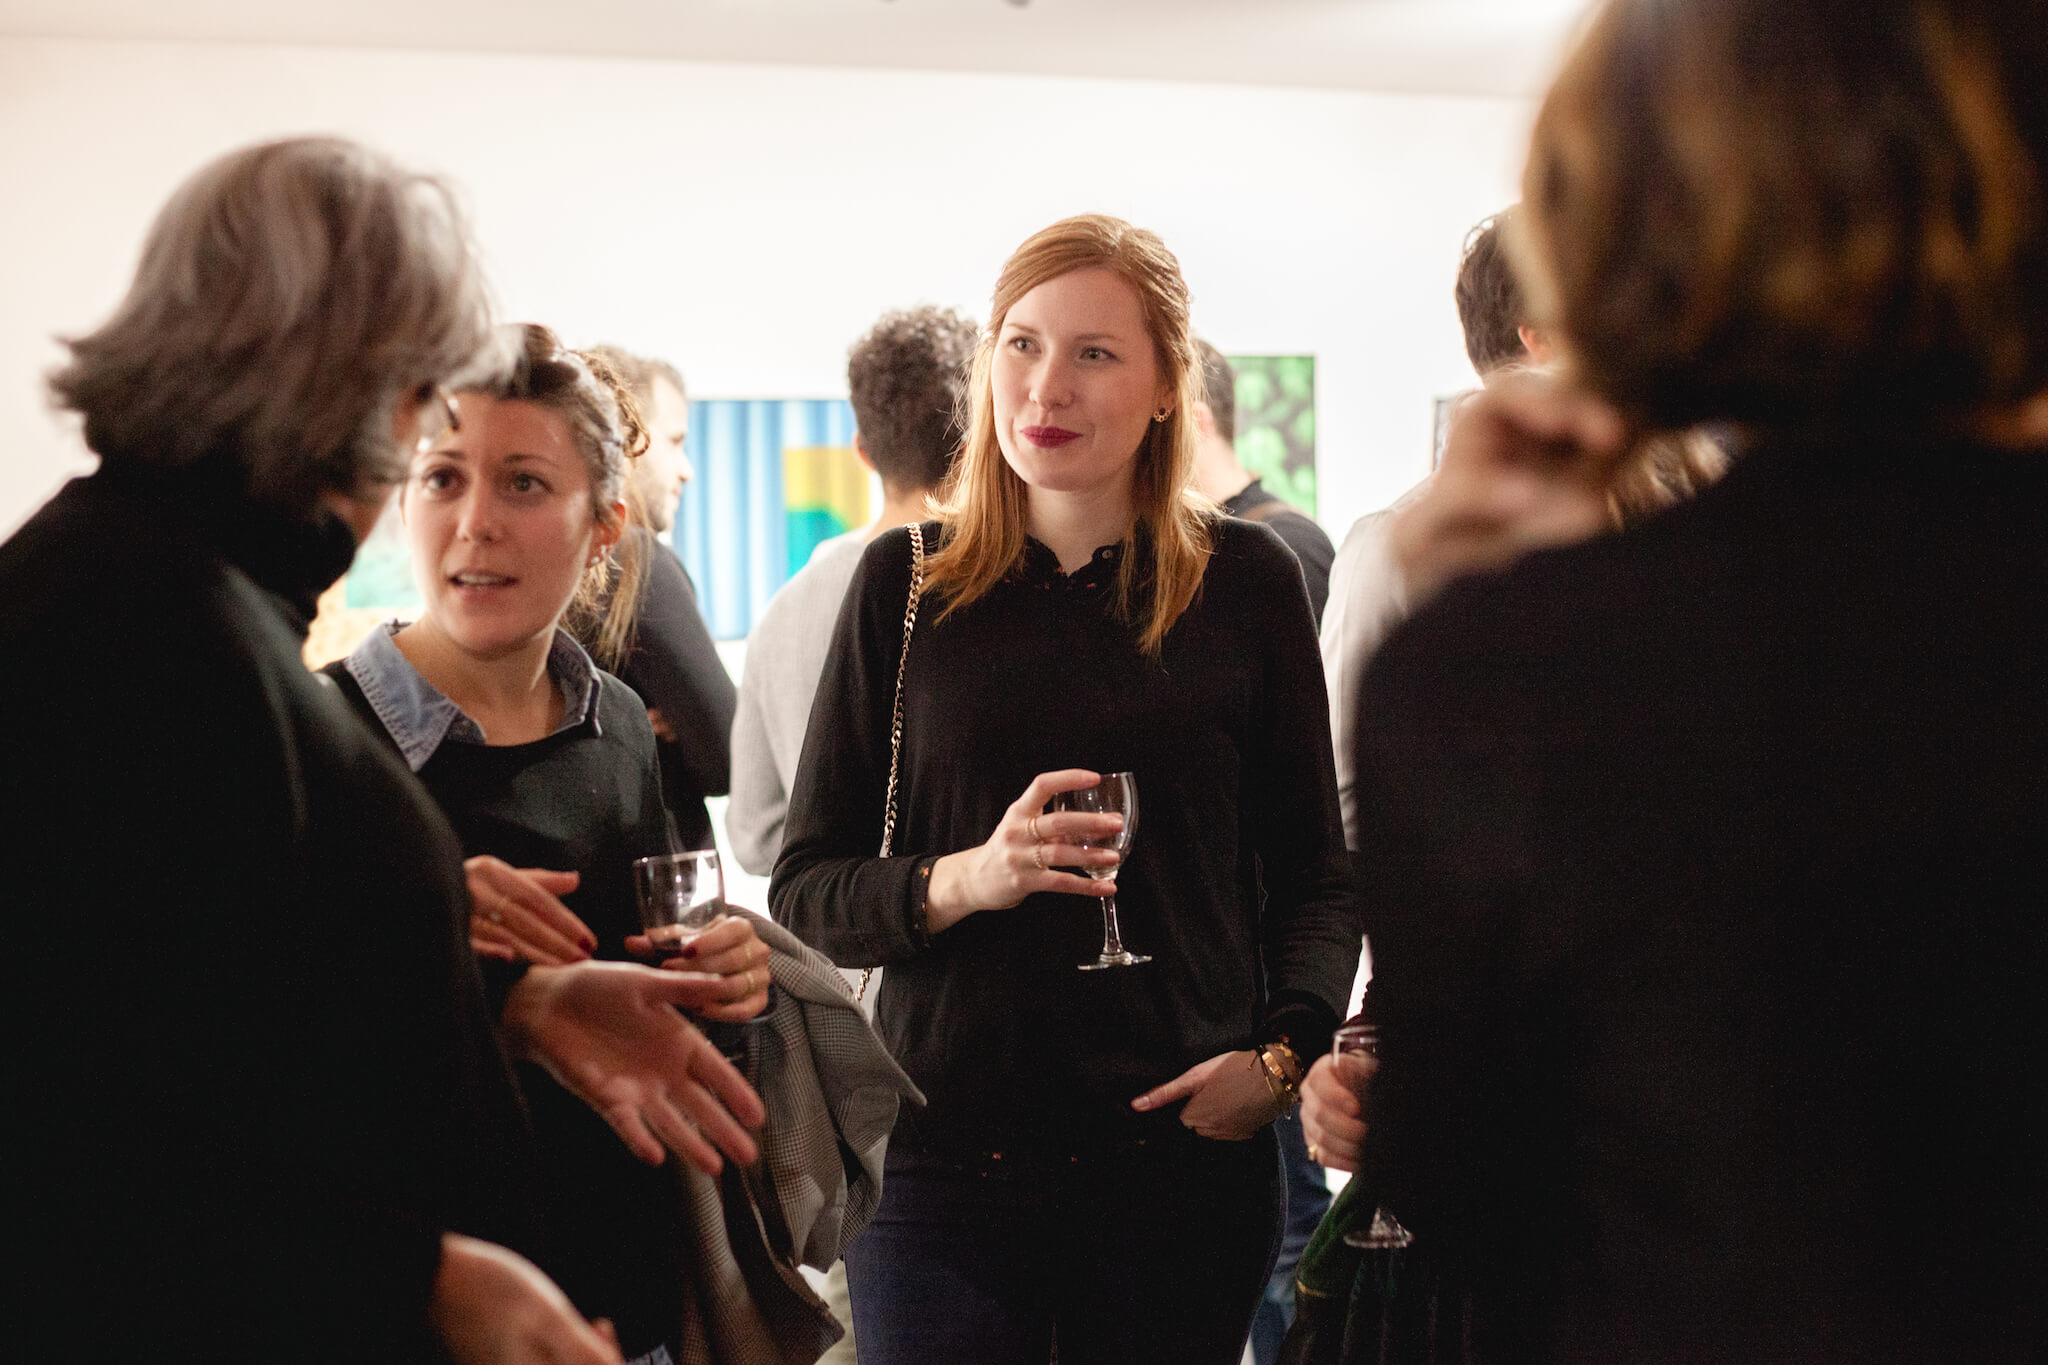 bumper-vernissage-immobilier-6.jpg